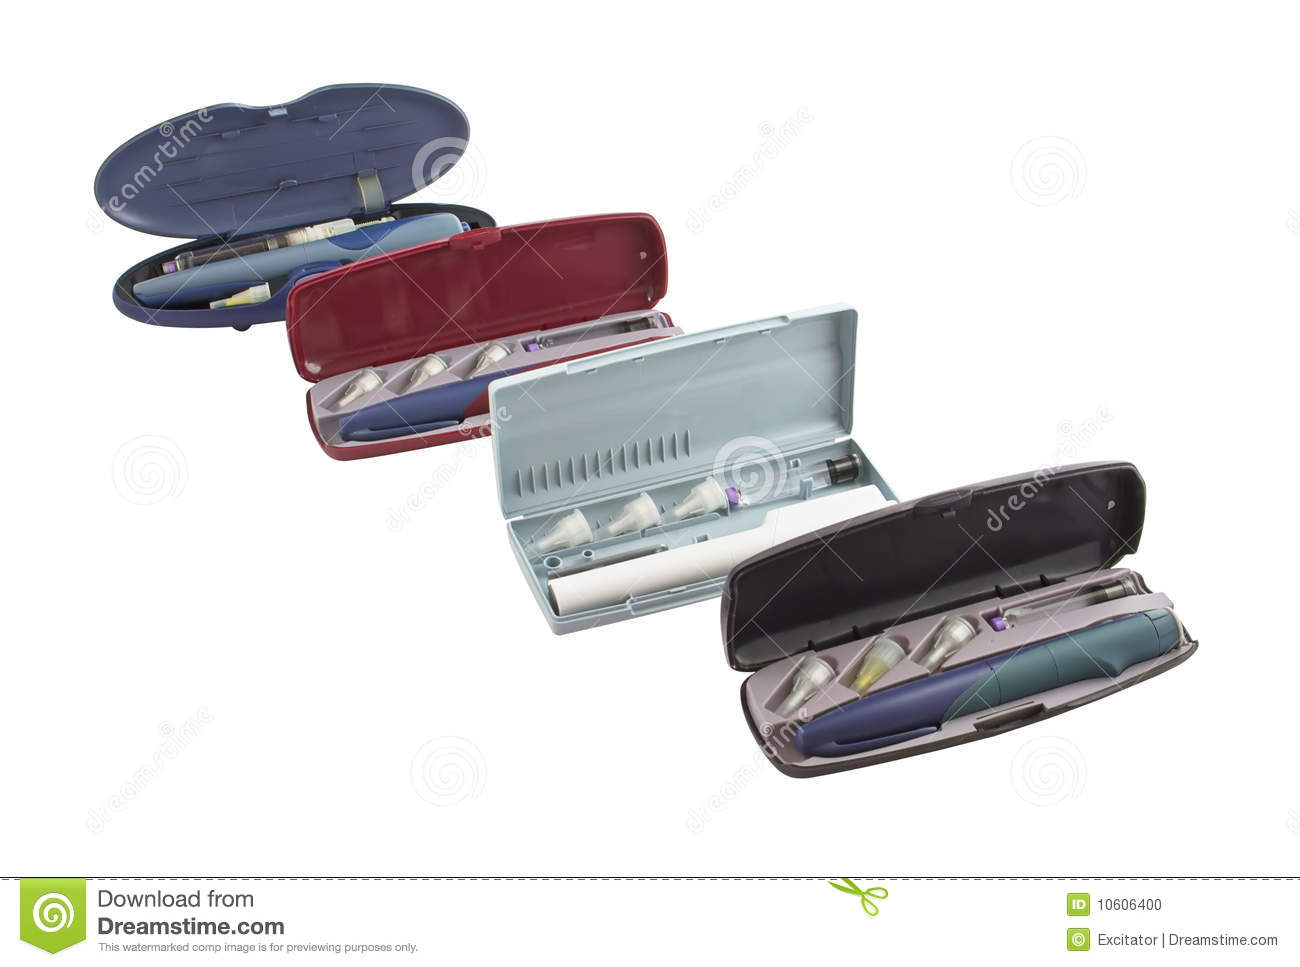 Four Insulin Pens With A Containers And Disposable Needles